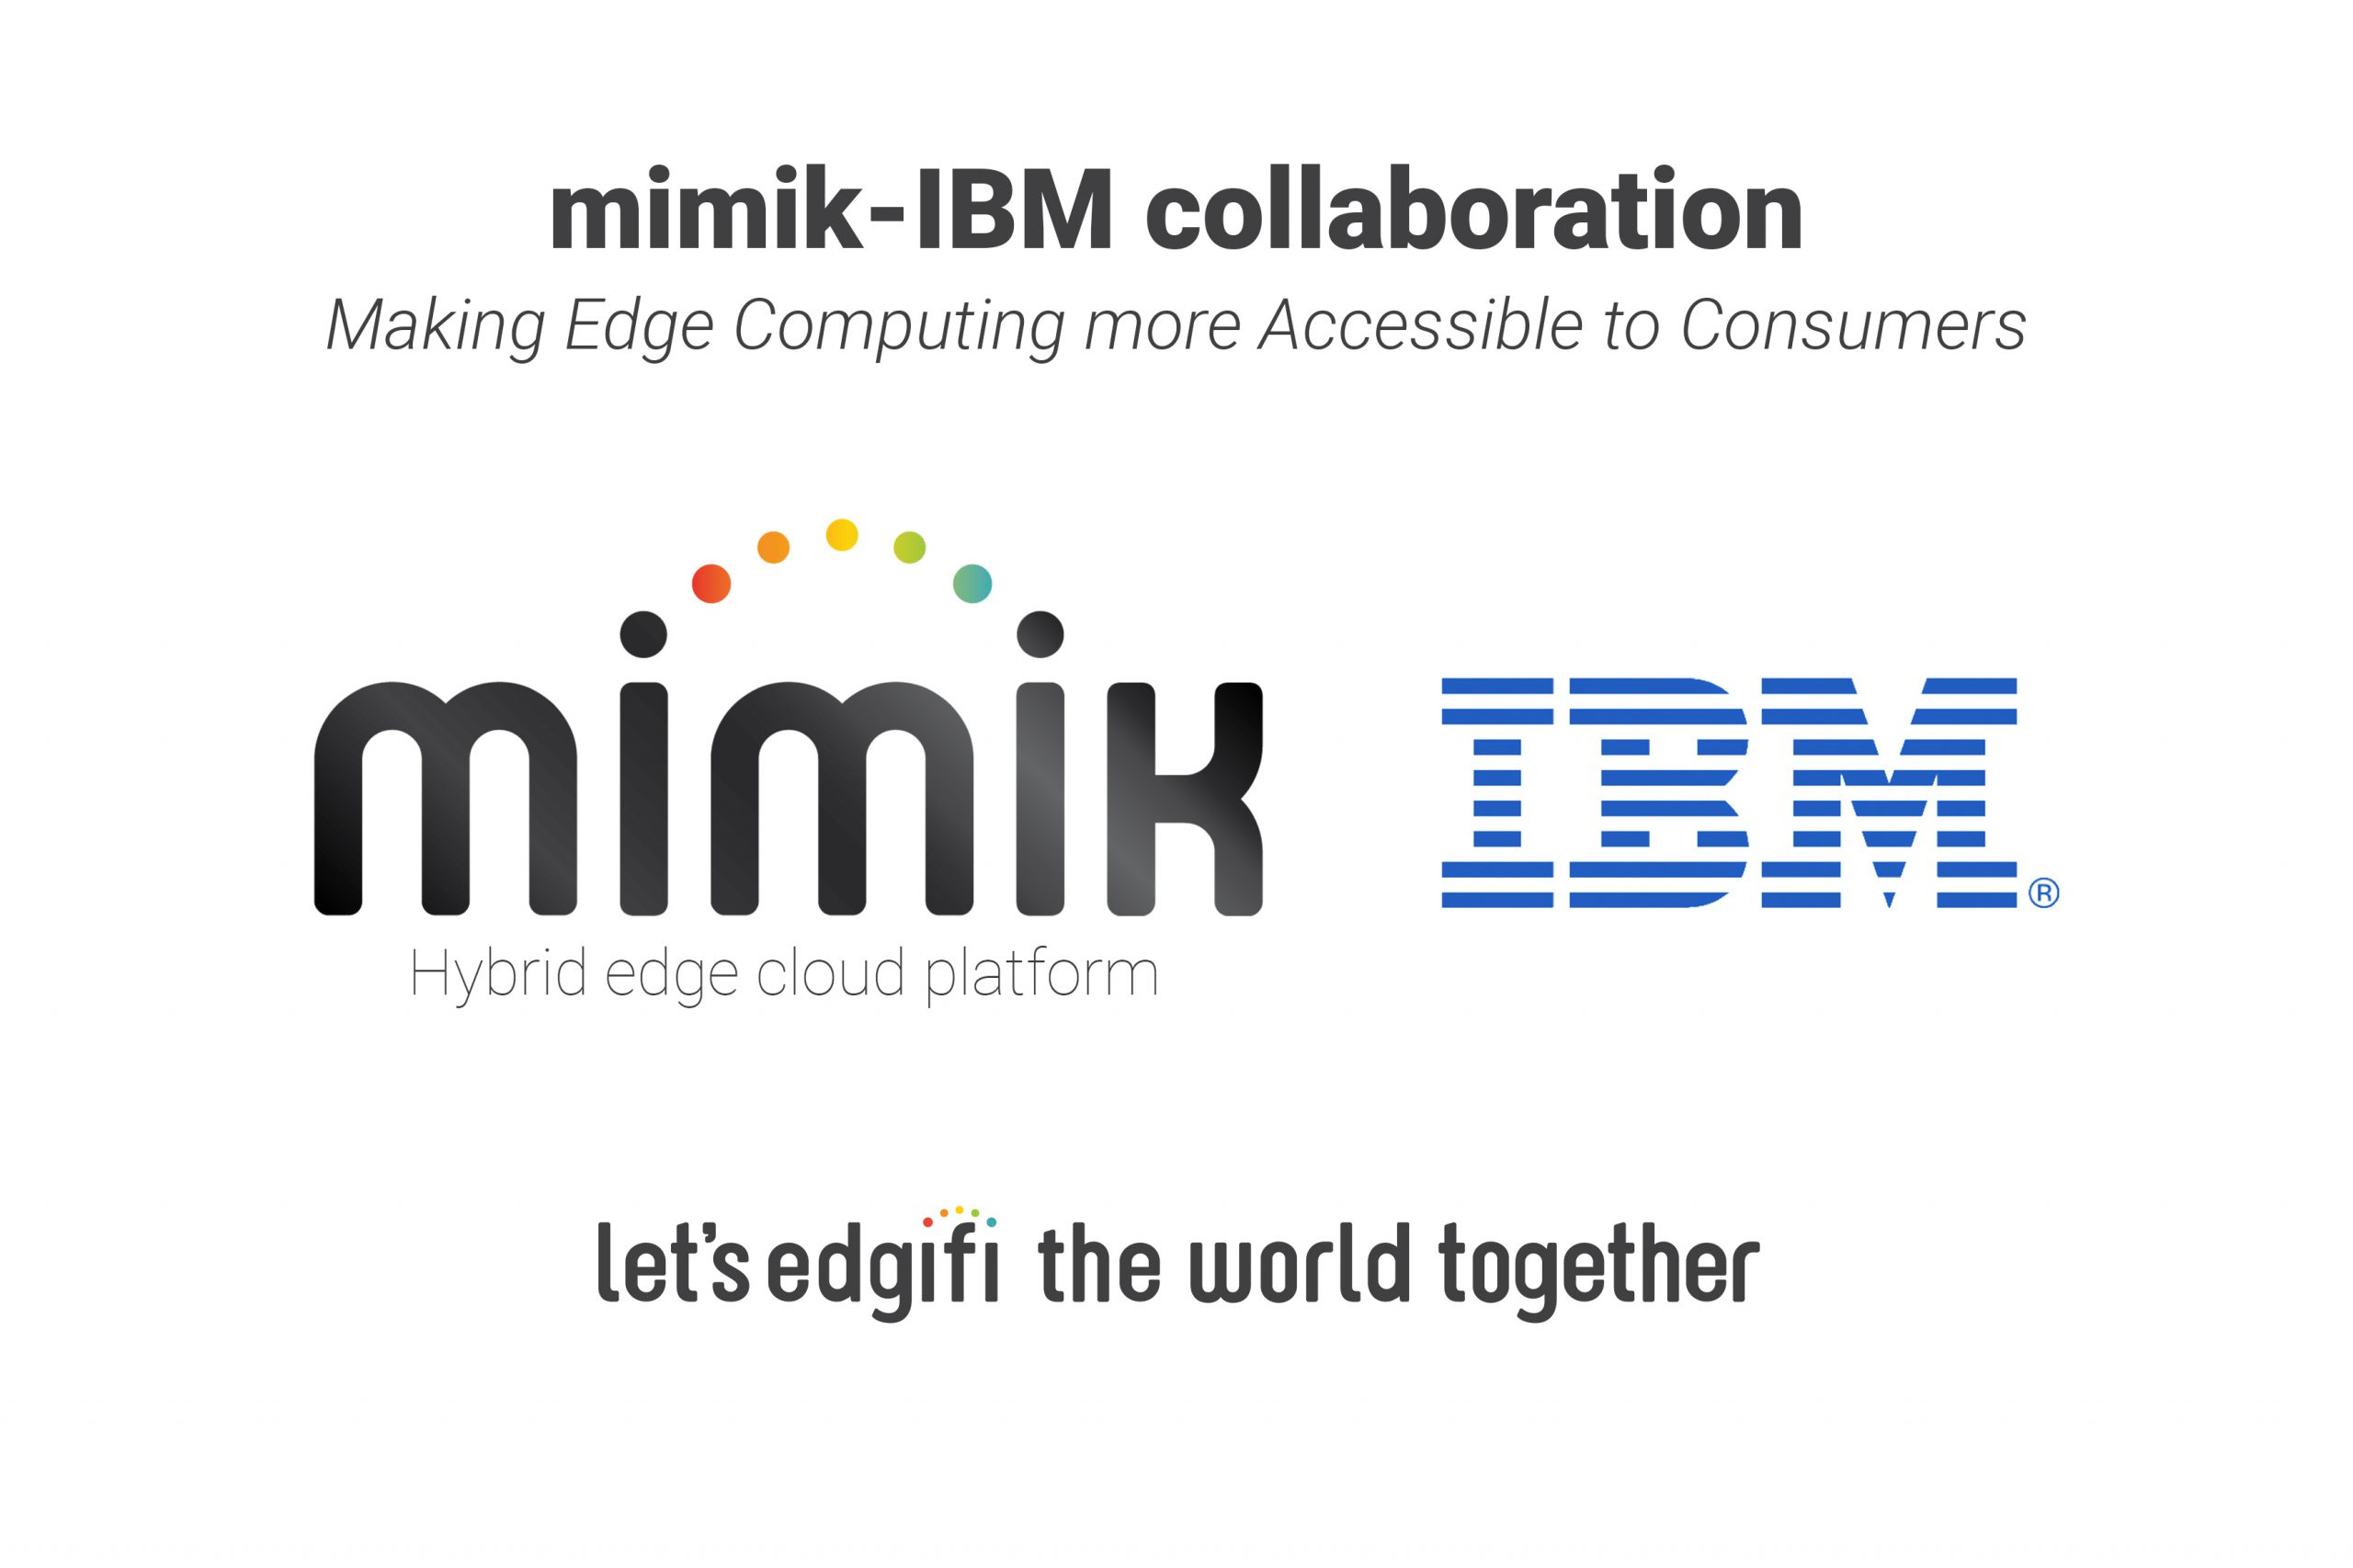 mimik Collaborates with IBM to Make Edge Computing More Accessible for Customers